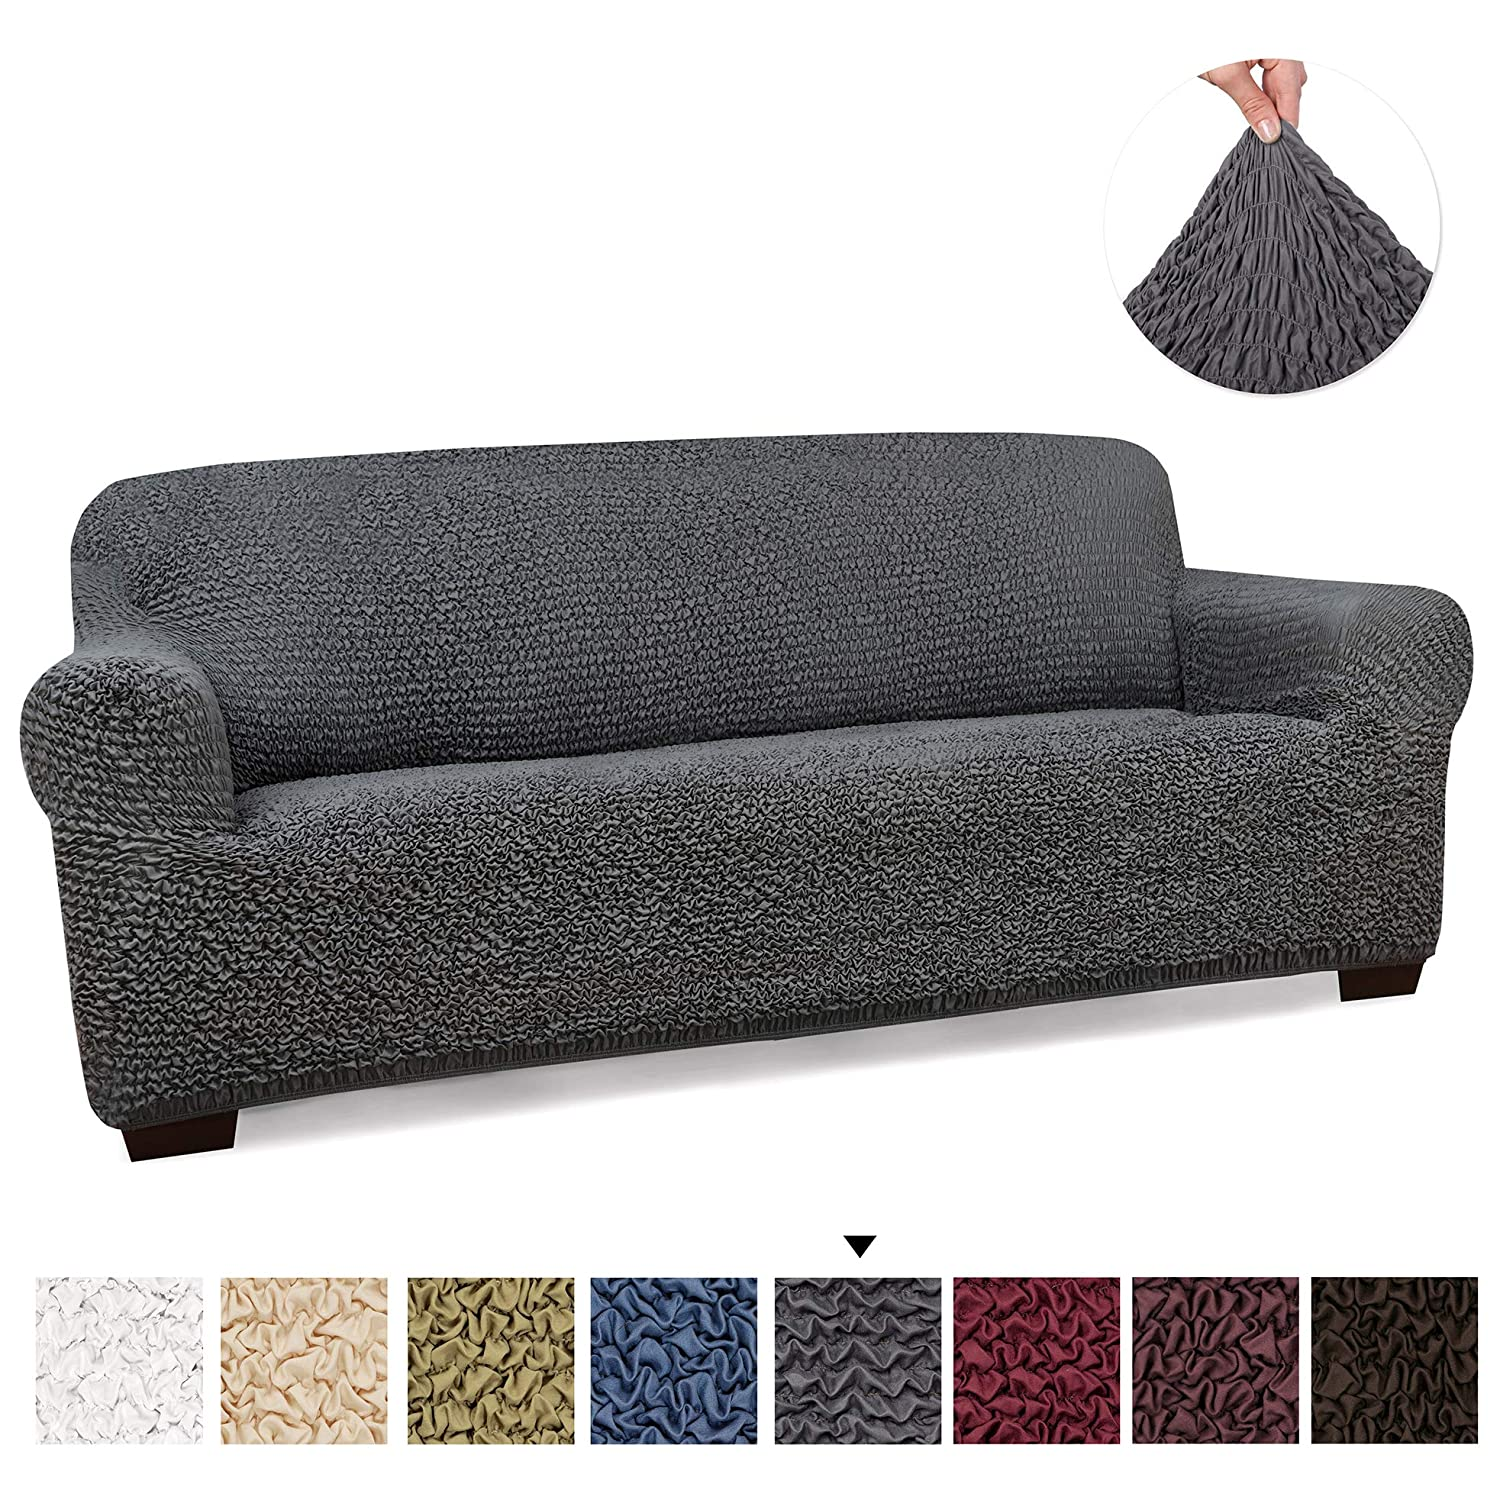 PAULATO BY GA.I.CO. Couch Cover - Sofa Cover - Sofa Slipcover - Soft Polyester Fabric Slipcover - 1-Piece Form Fit Stretch Stylish Furniture Cover - Microfibra Collection - Grey (Sofa)